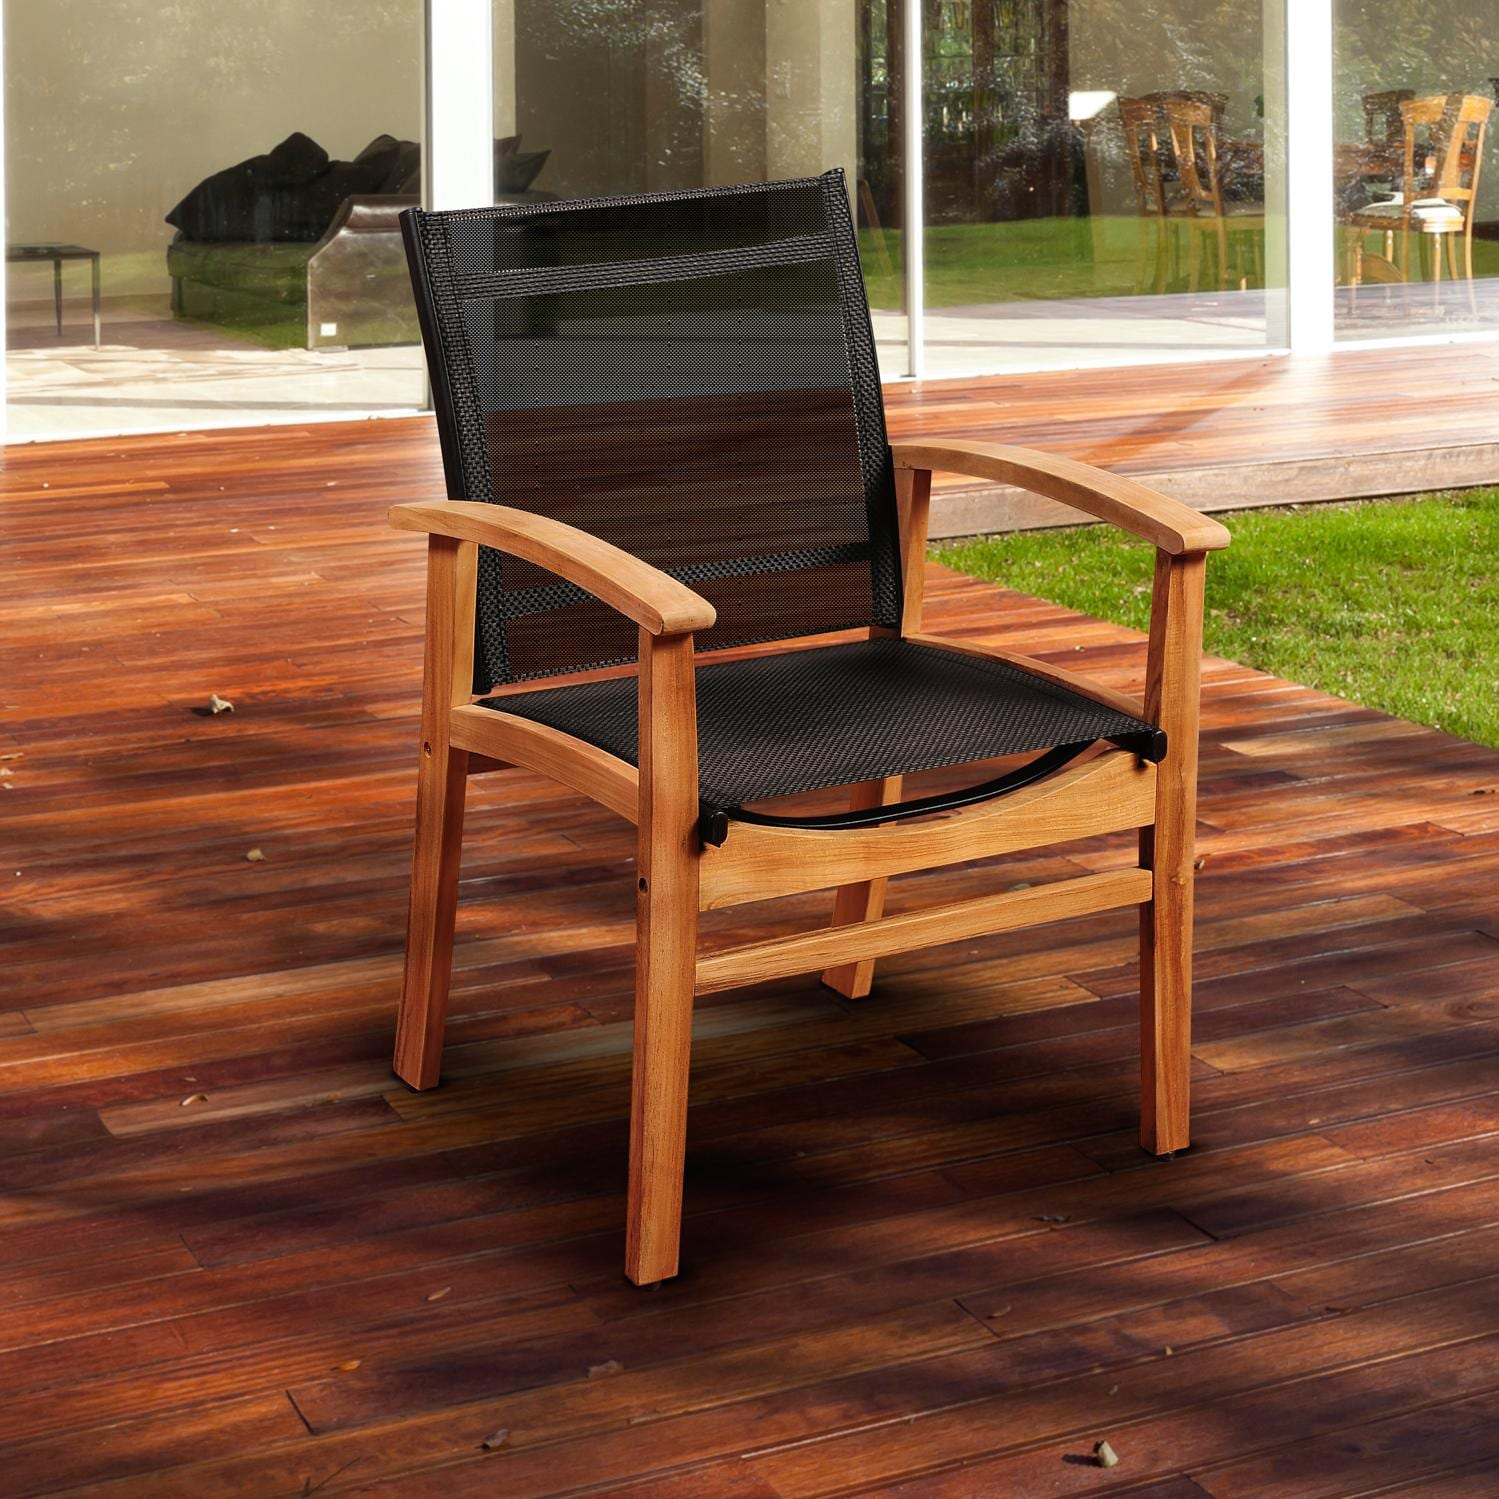 Amazonia Fortuna Sling Patio Dining Arm Chair With Teak Frame